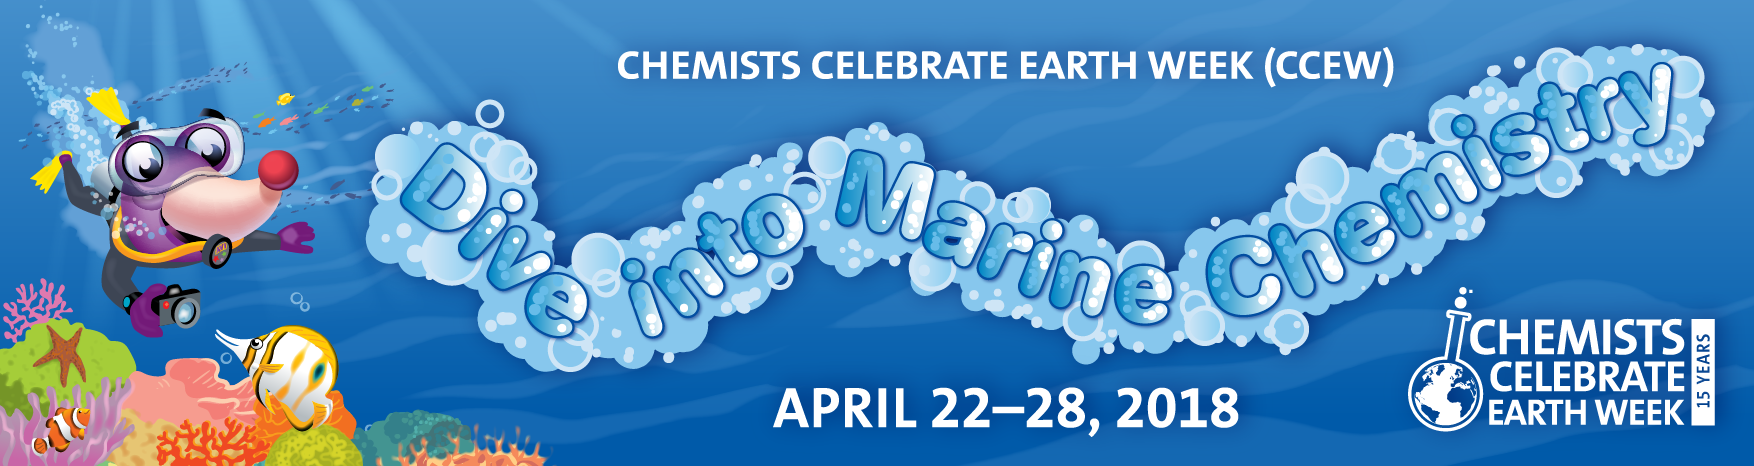 Chemists Celebrate Earth Week